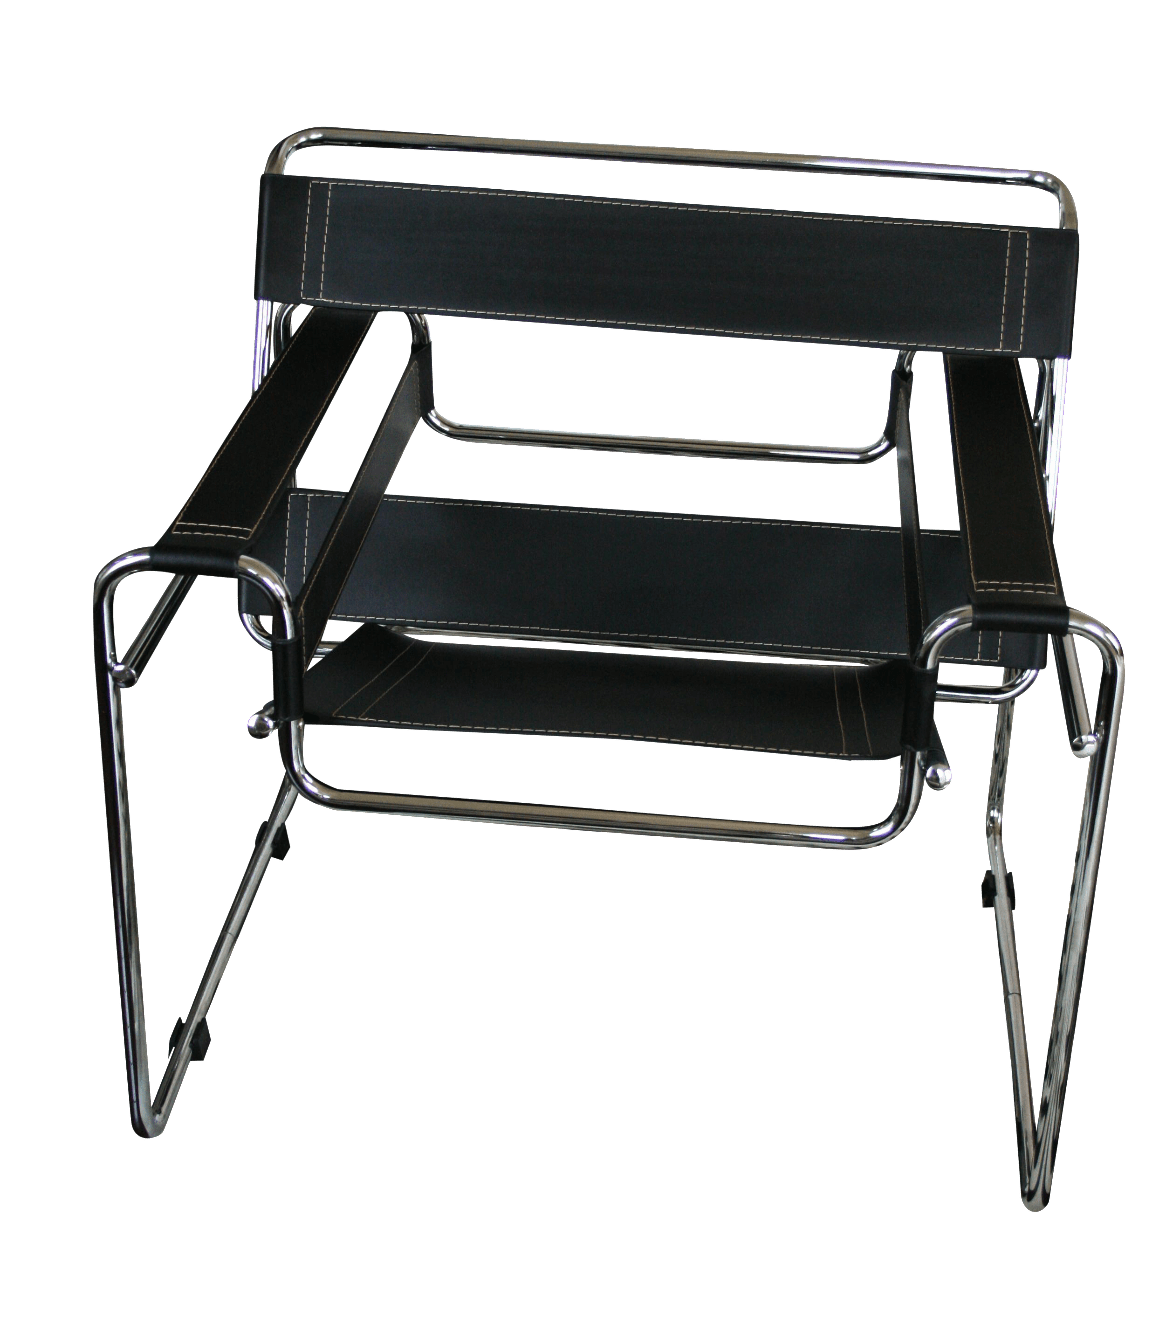 Wassily Chair Reproduction Marcel Breuer Wassily Chair Reproduction 3 Avail Chairish